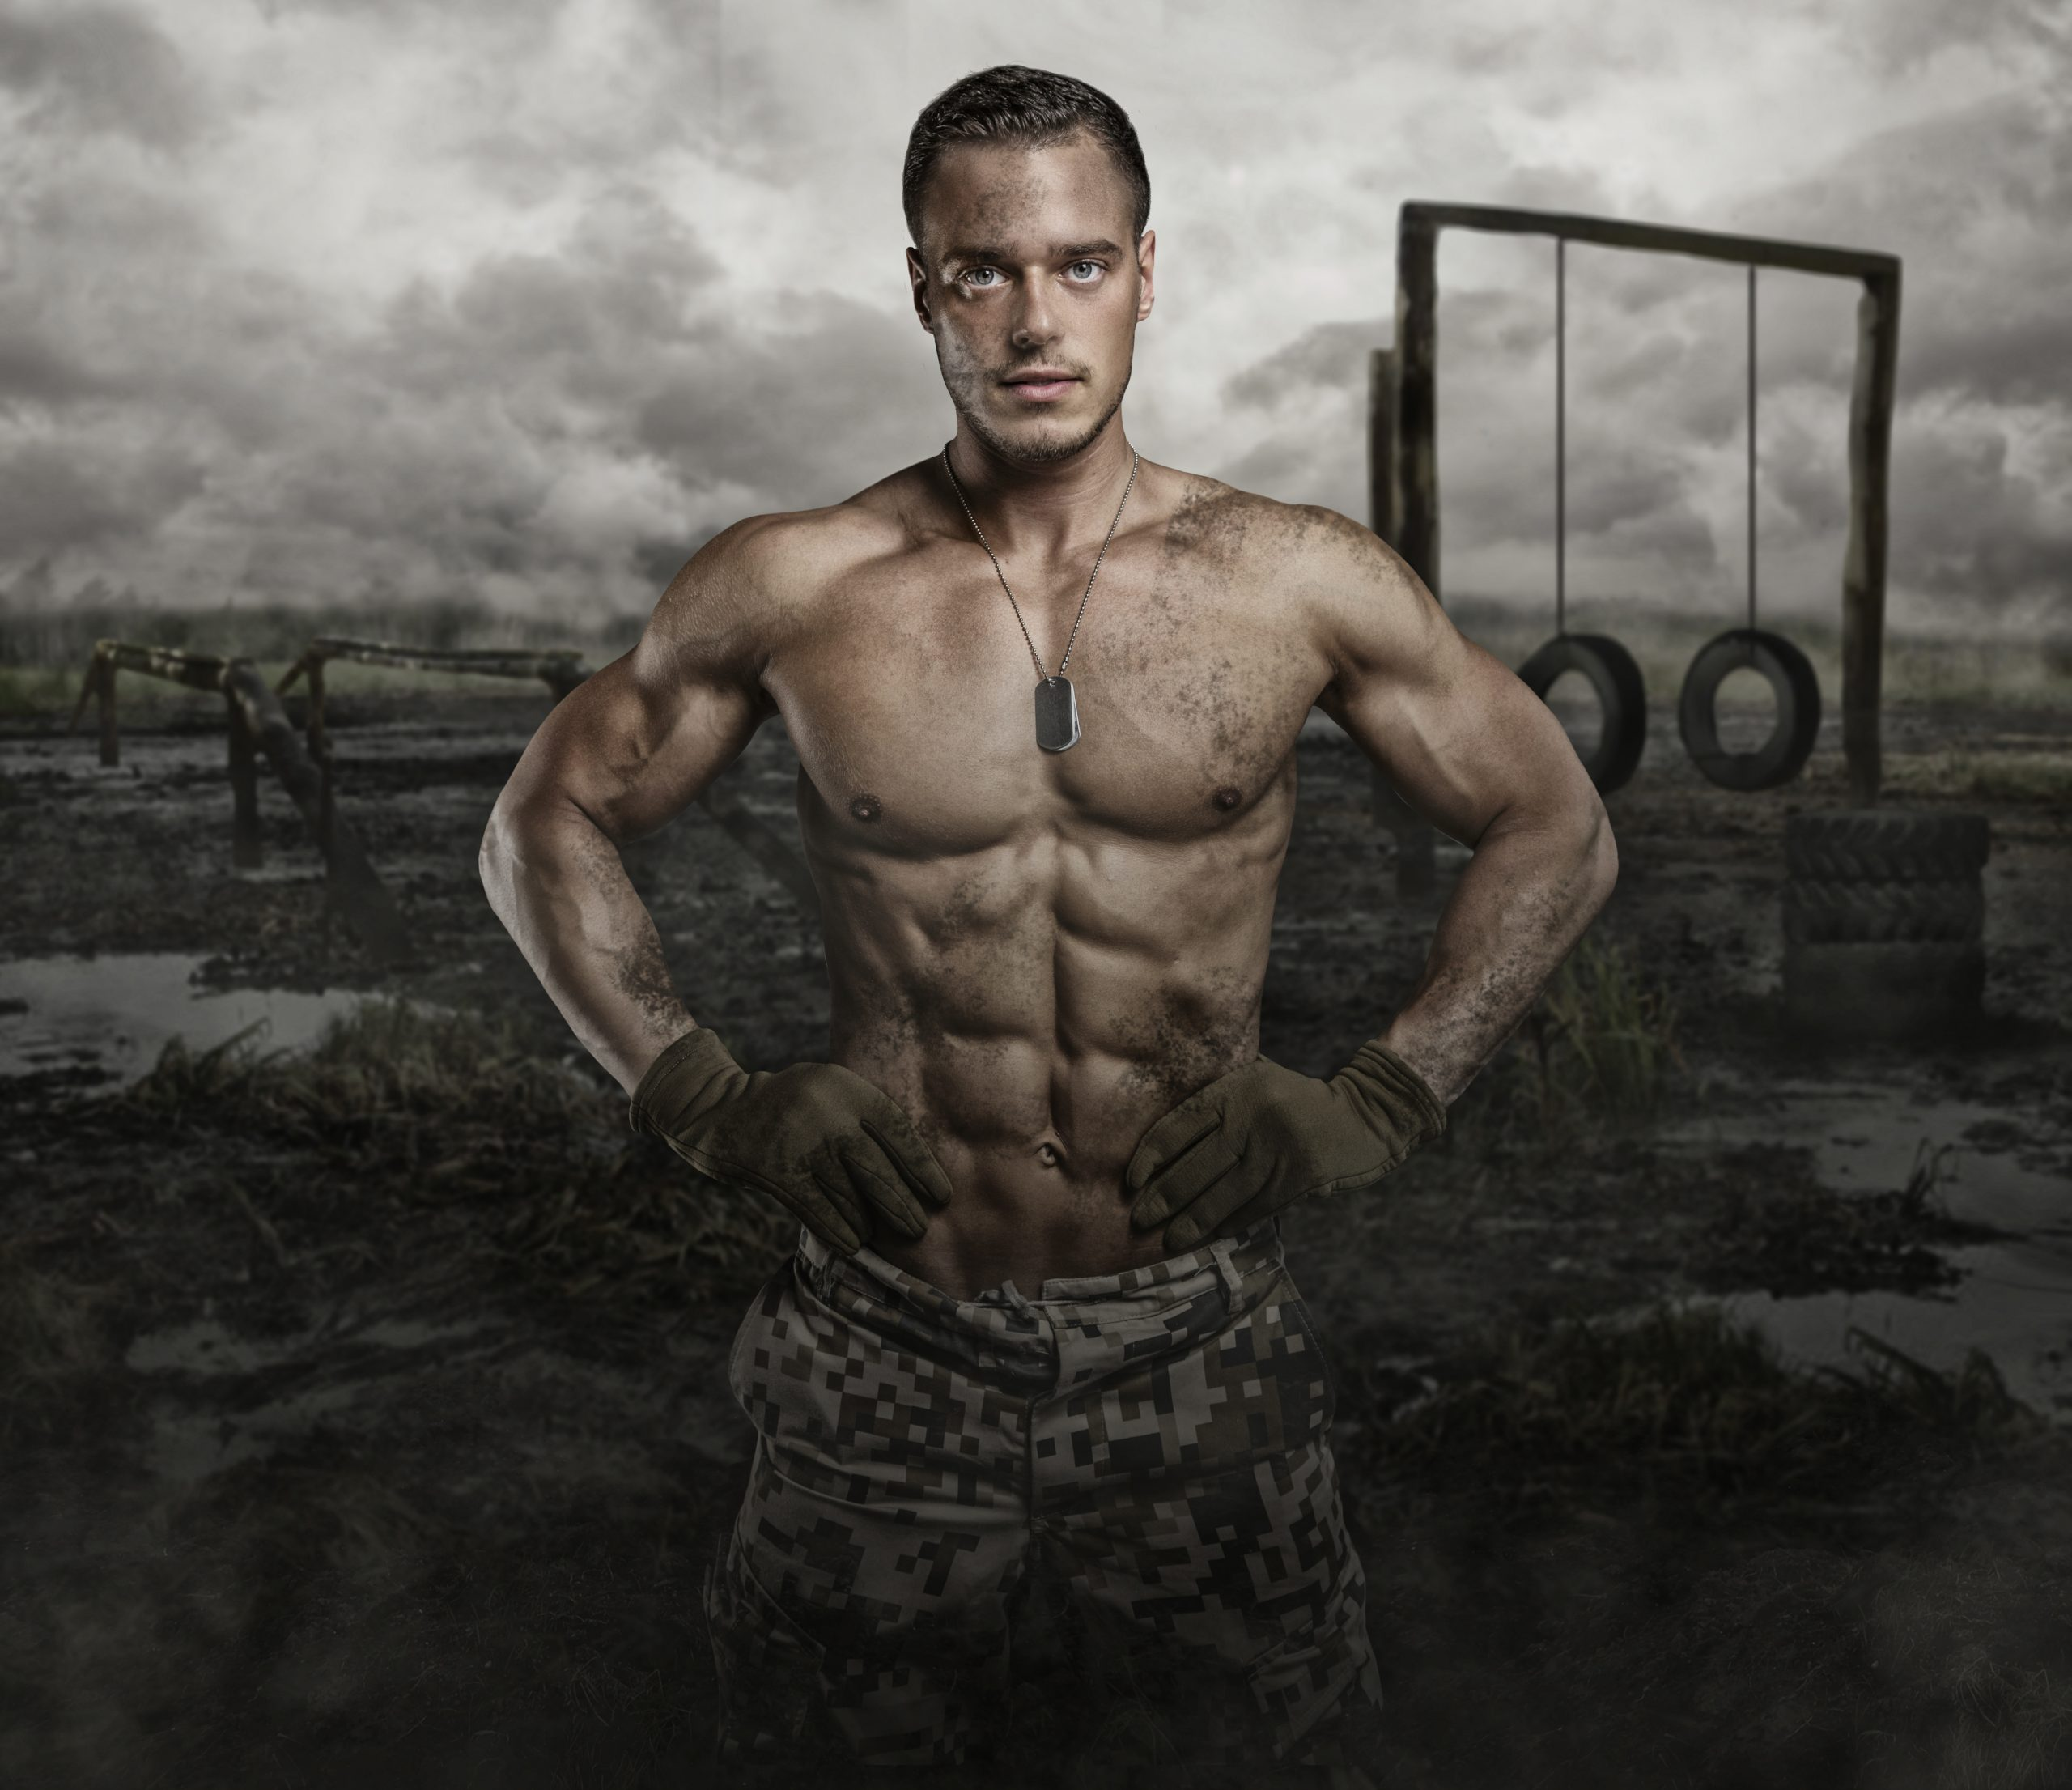 A United States marine poses shirtless, with defined abs and muscles, in front of a marine training course.